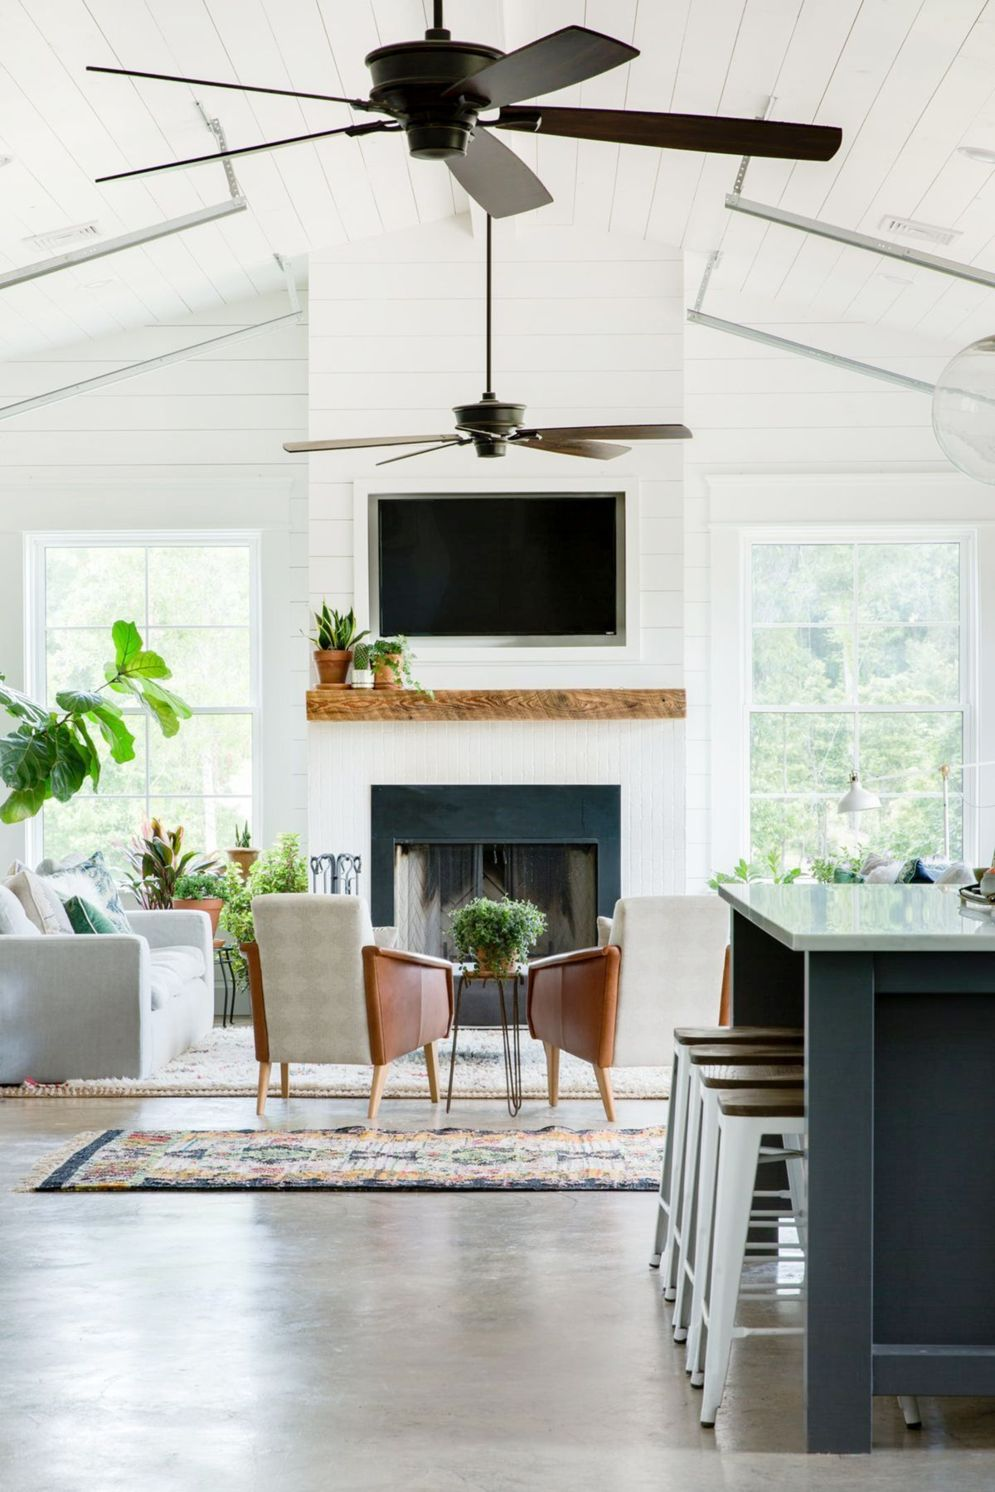 Spacious home images with vaulted ceiling showcasing grand and wonderful home design Image 33